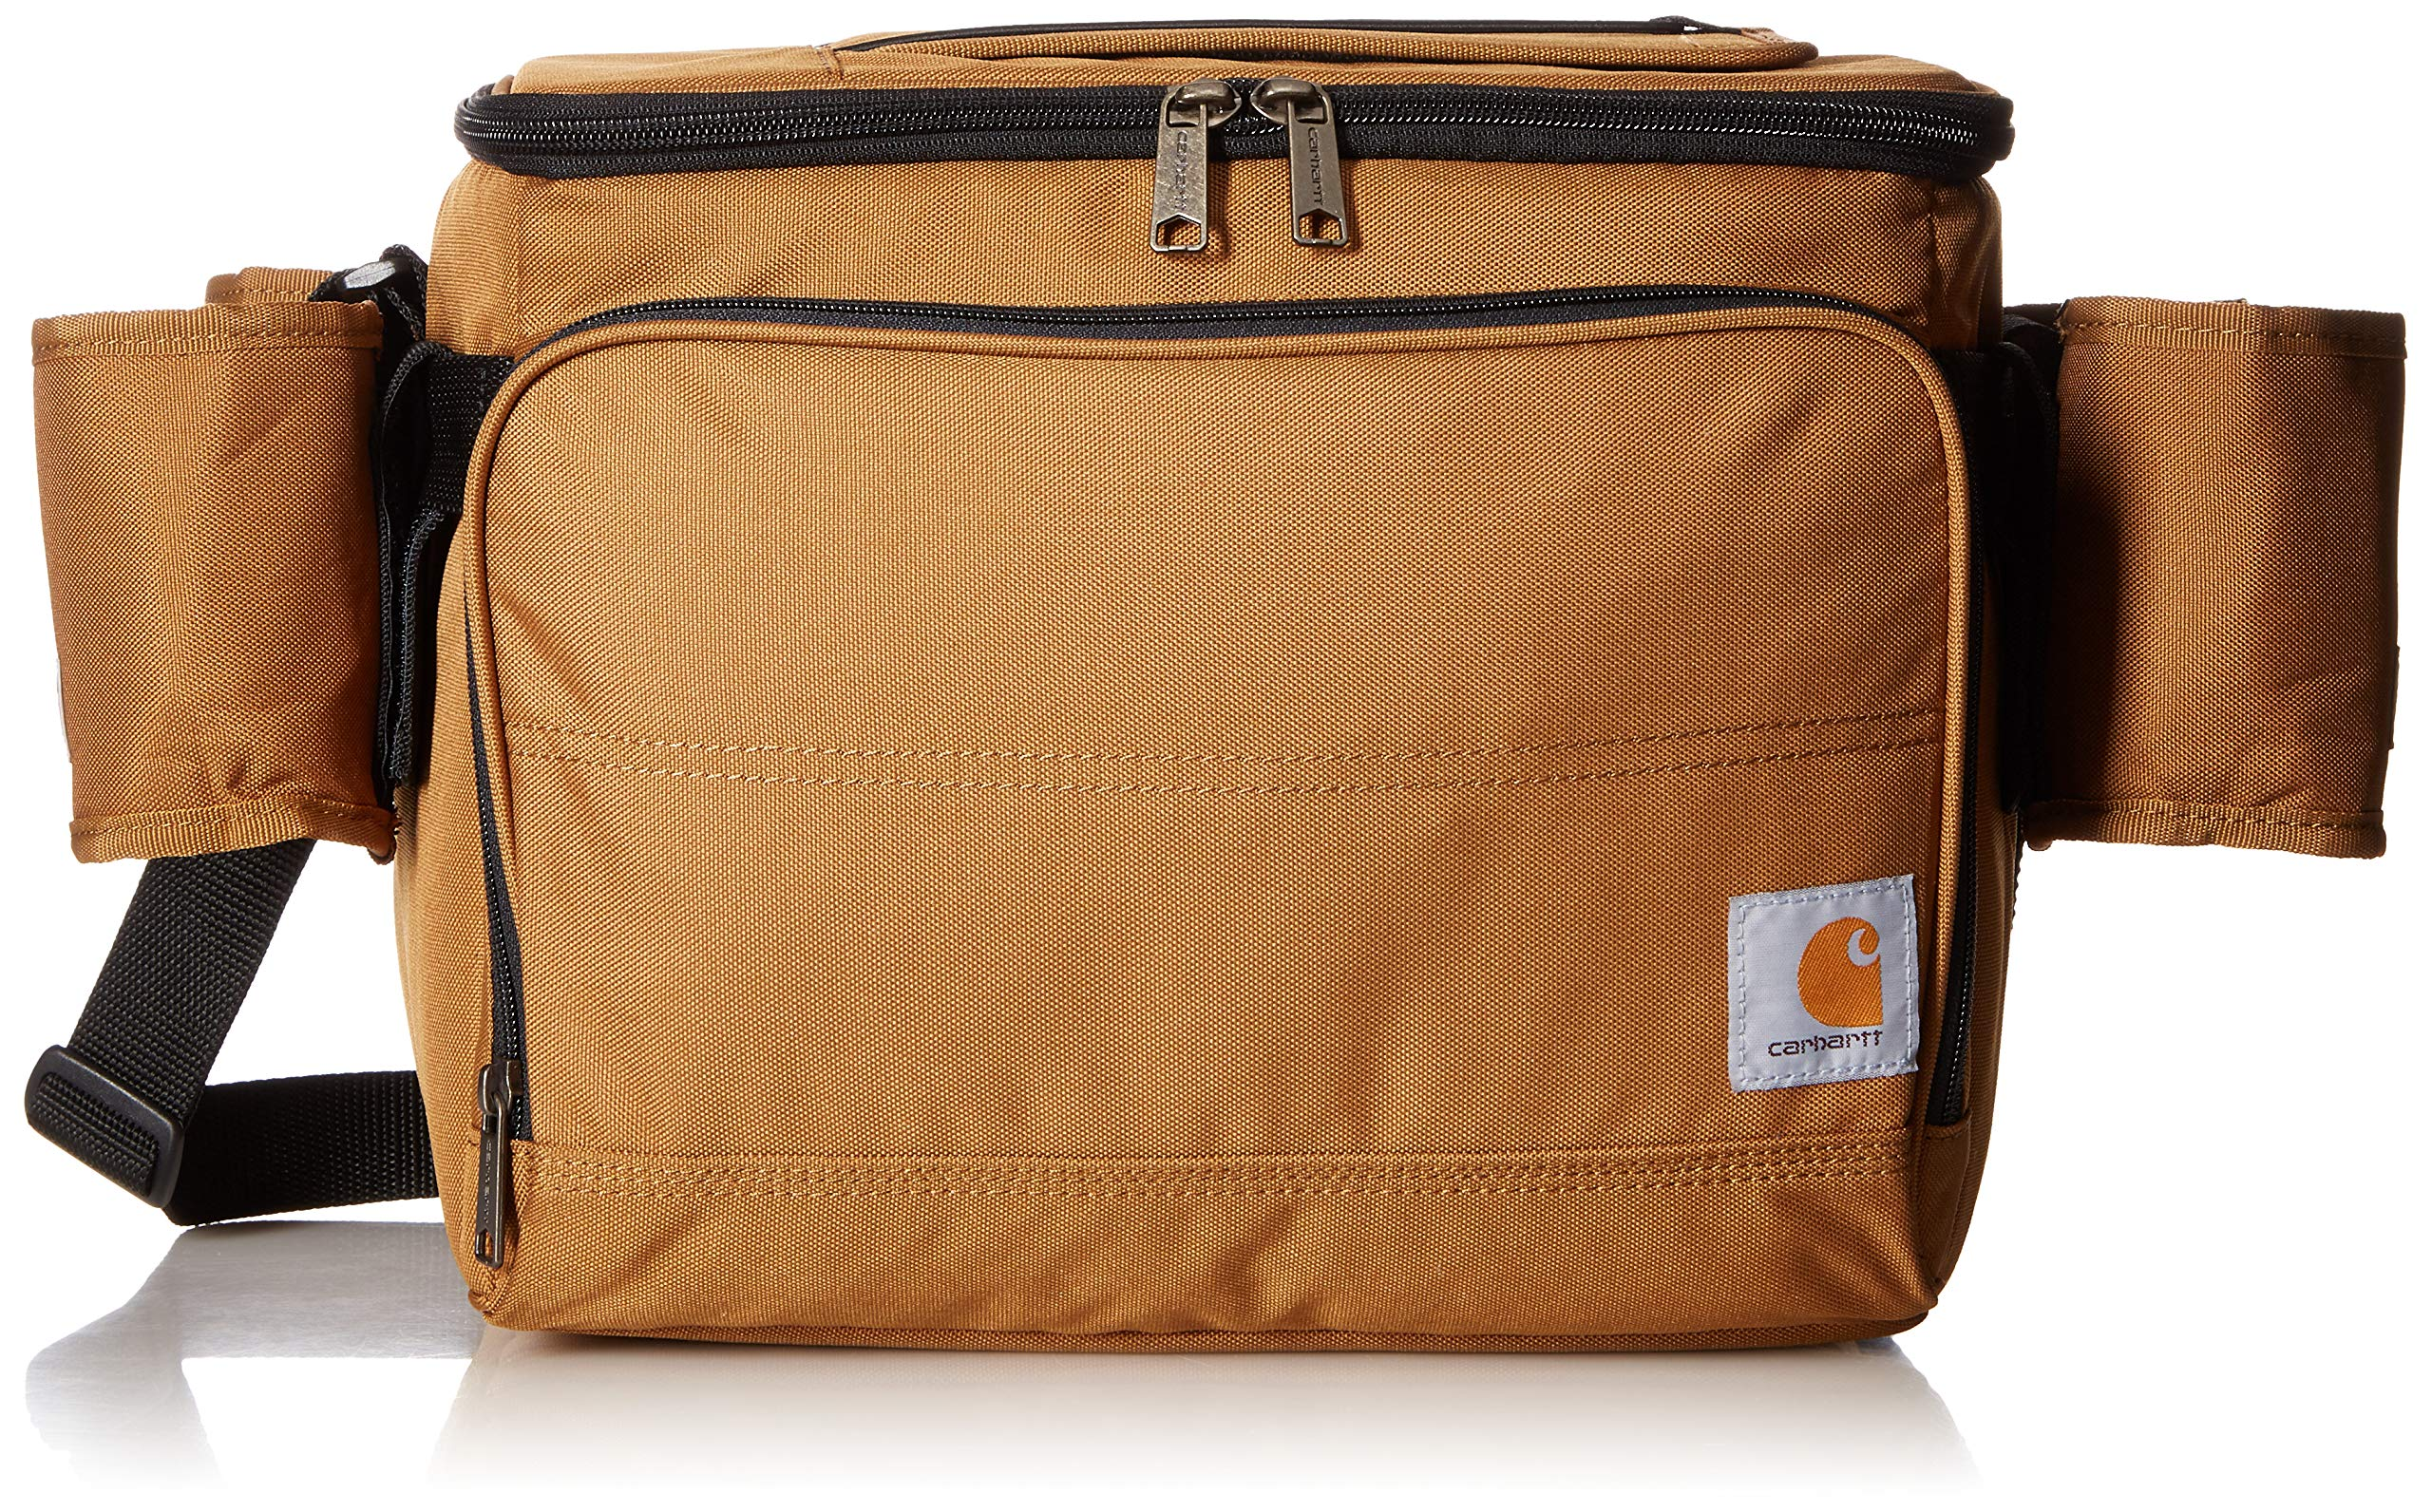 Carhartt Deluxe Cooler Bag with 4 Detachable Insulated Beverage Sleeves by Carhartt